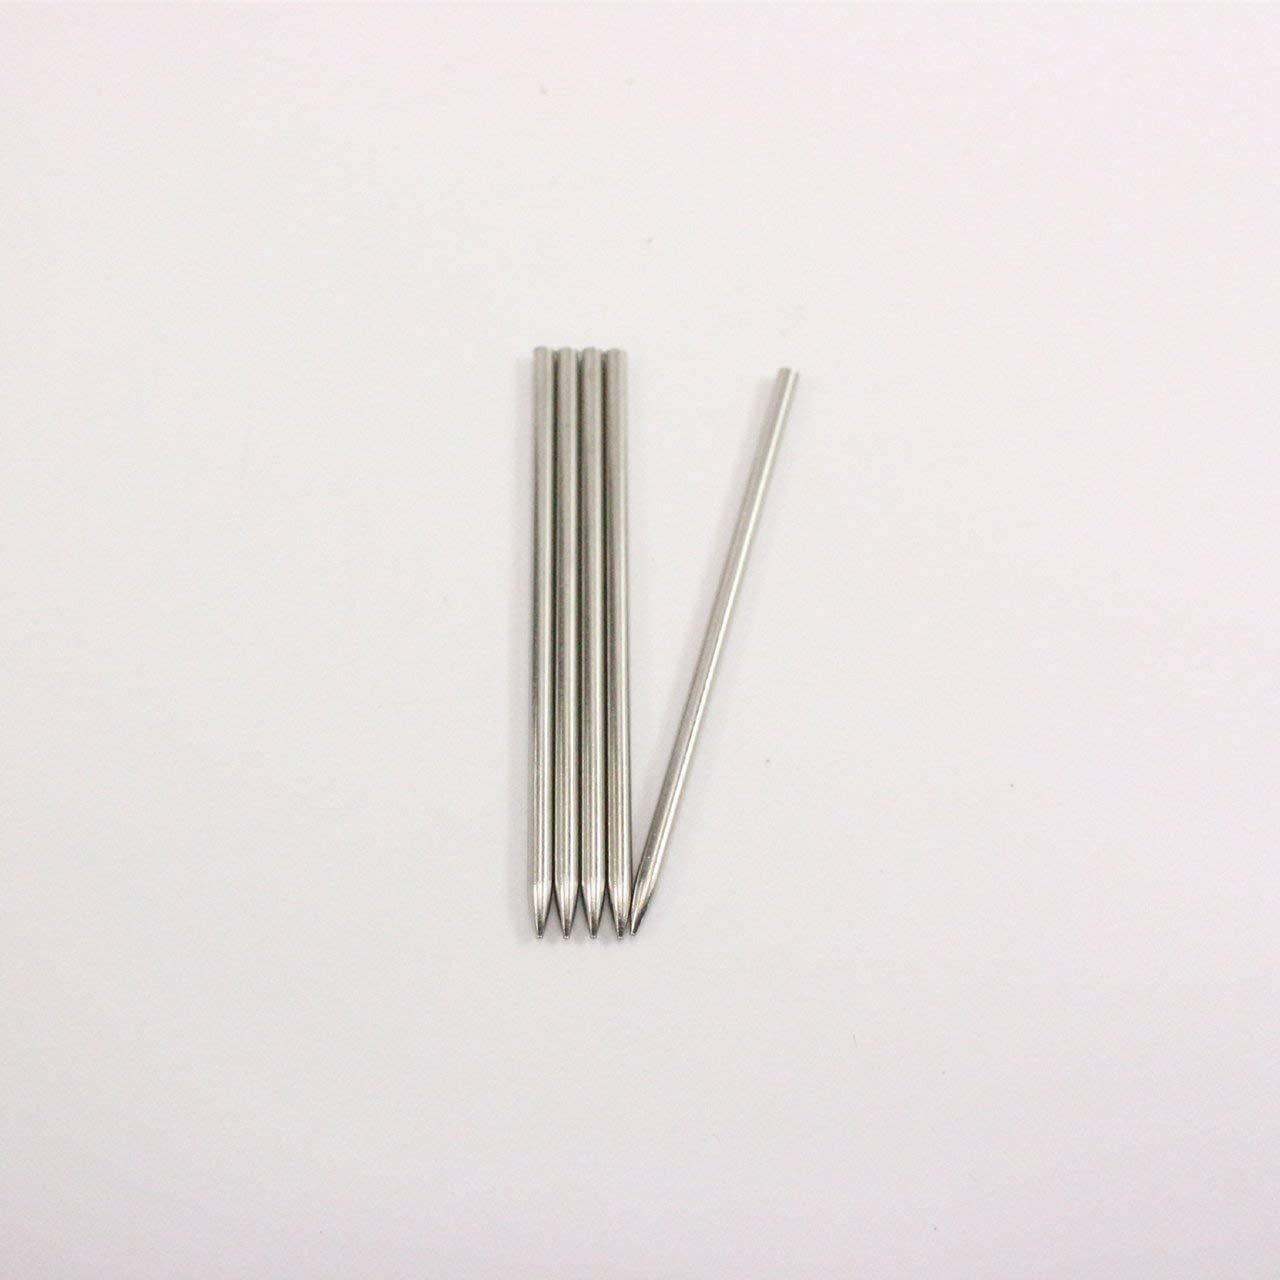 3mm Stainless Steel Needle Paracord FID Lacing Stitching Needles for Paracord Bracelet Leather Weaving Tool OP